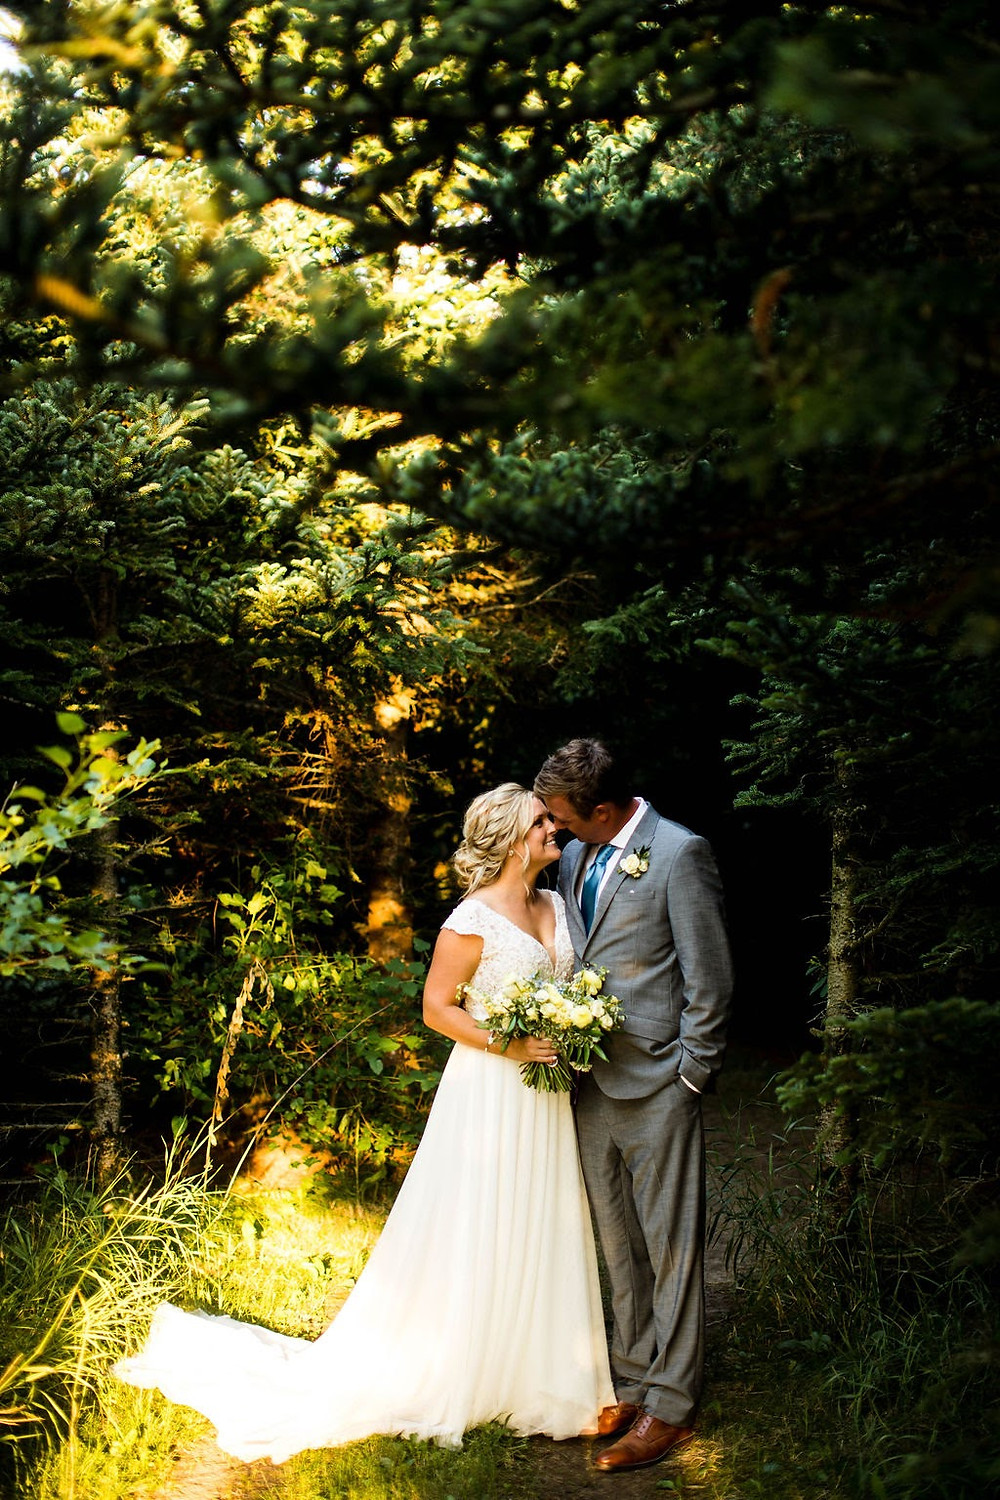 Illinois couple in the woods on wedding day